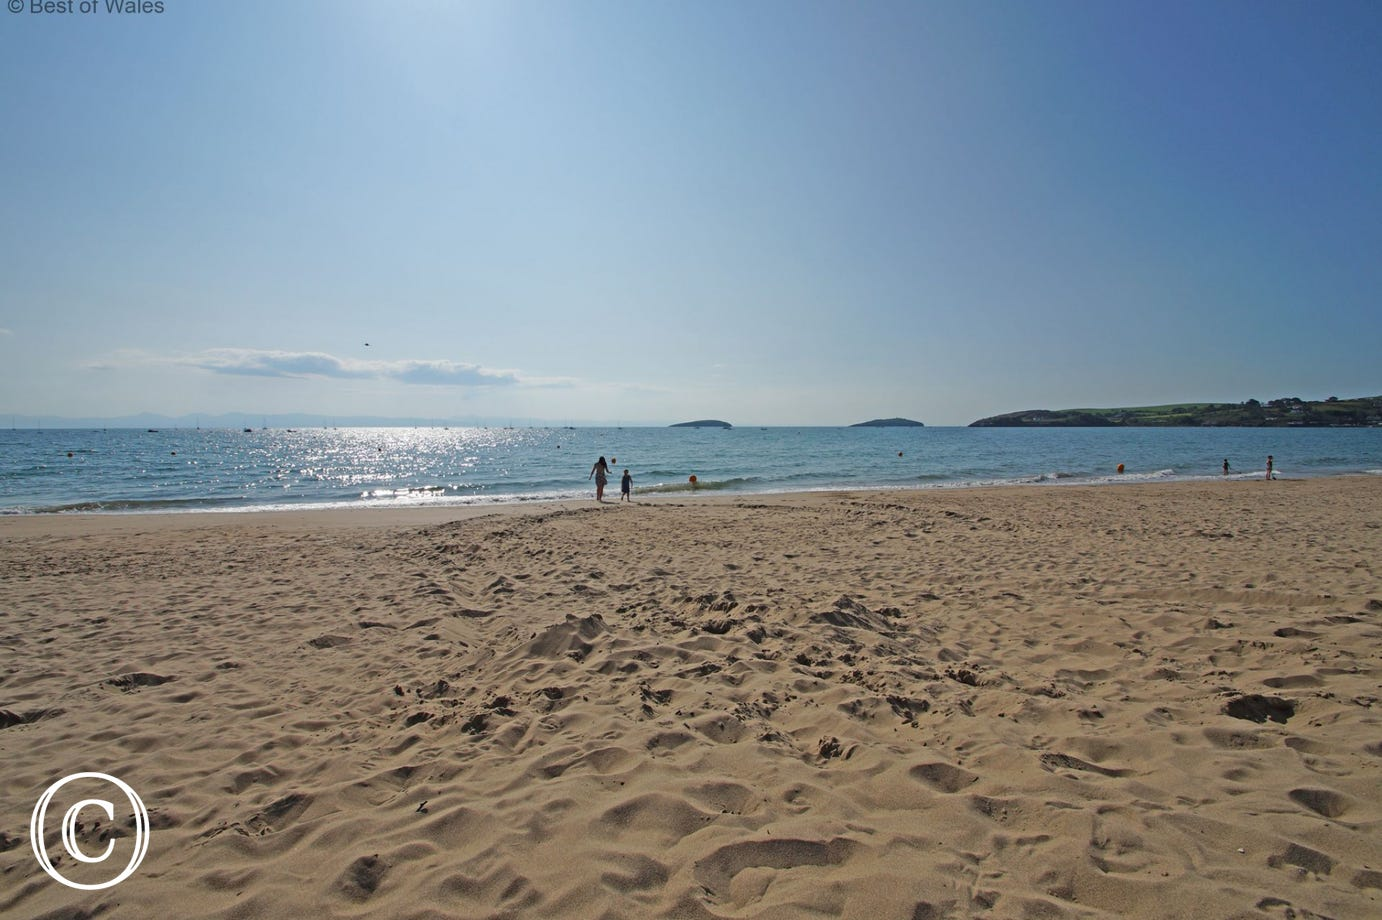 Abersoch Beach - one of many beautiful stretches of sand nearby